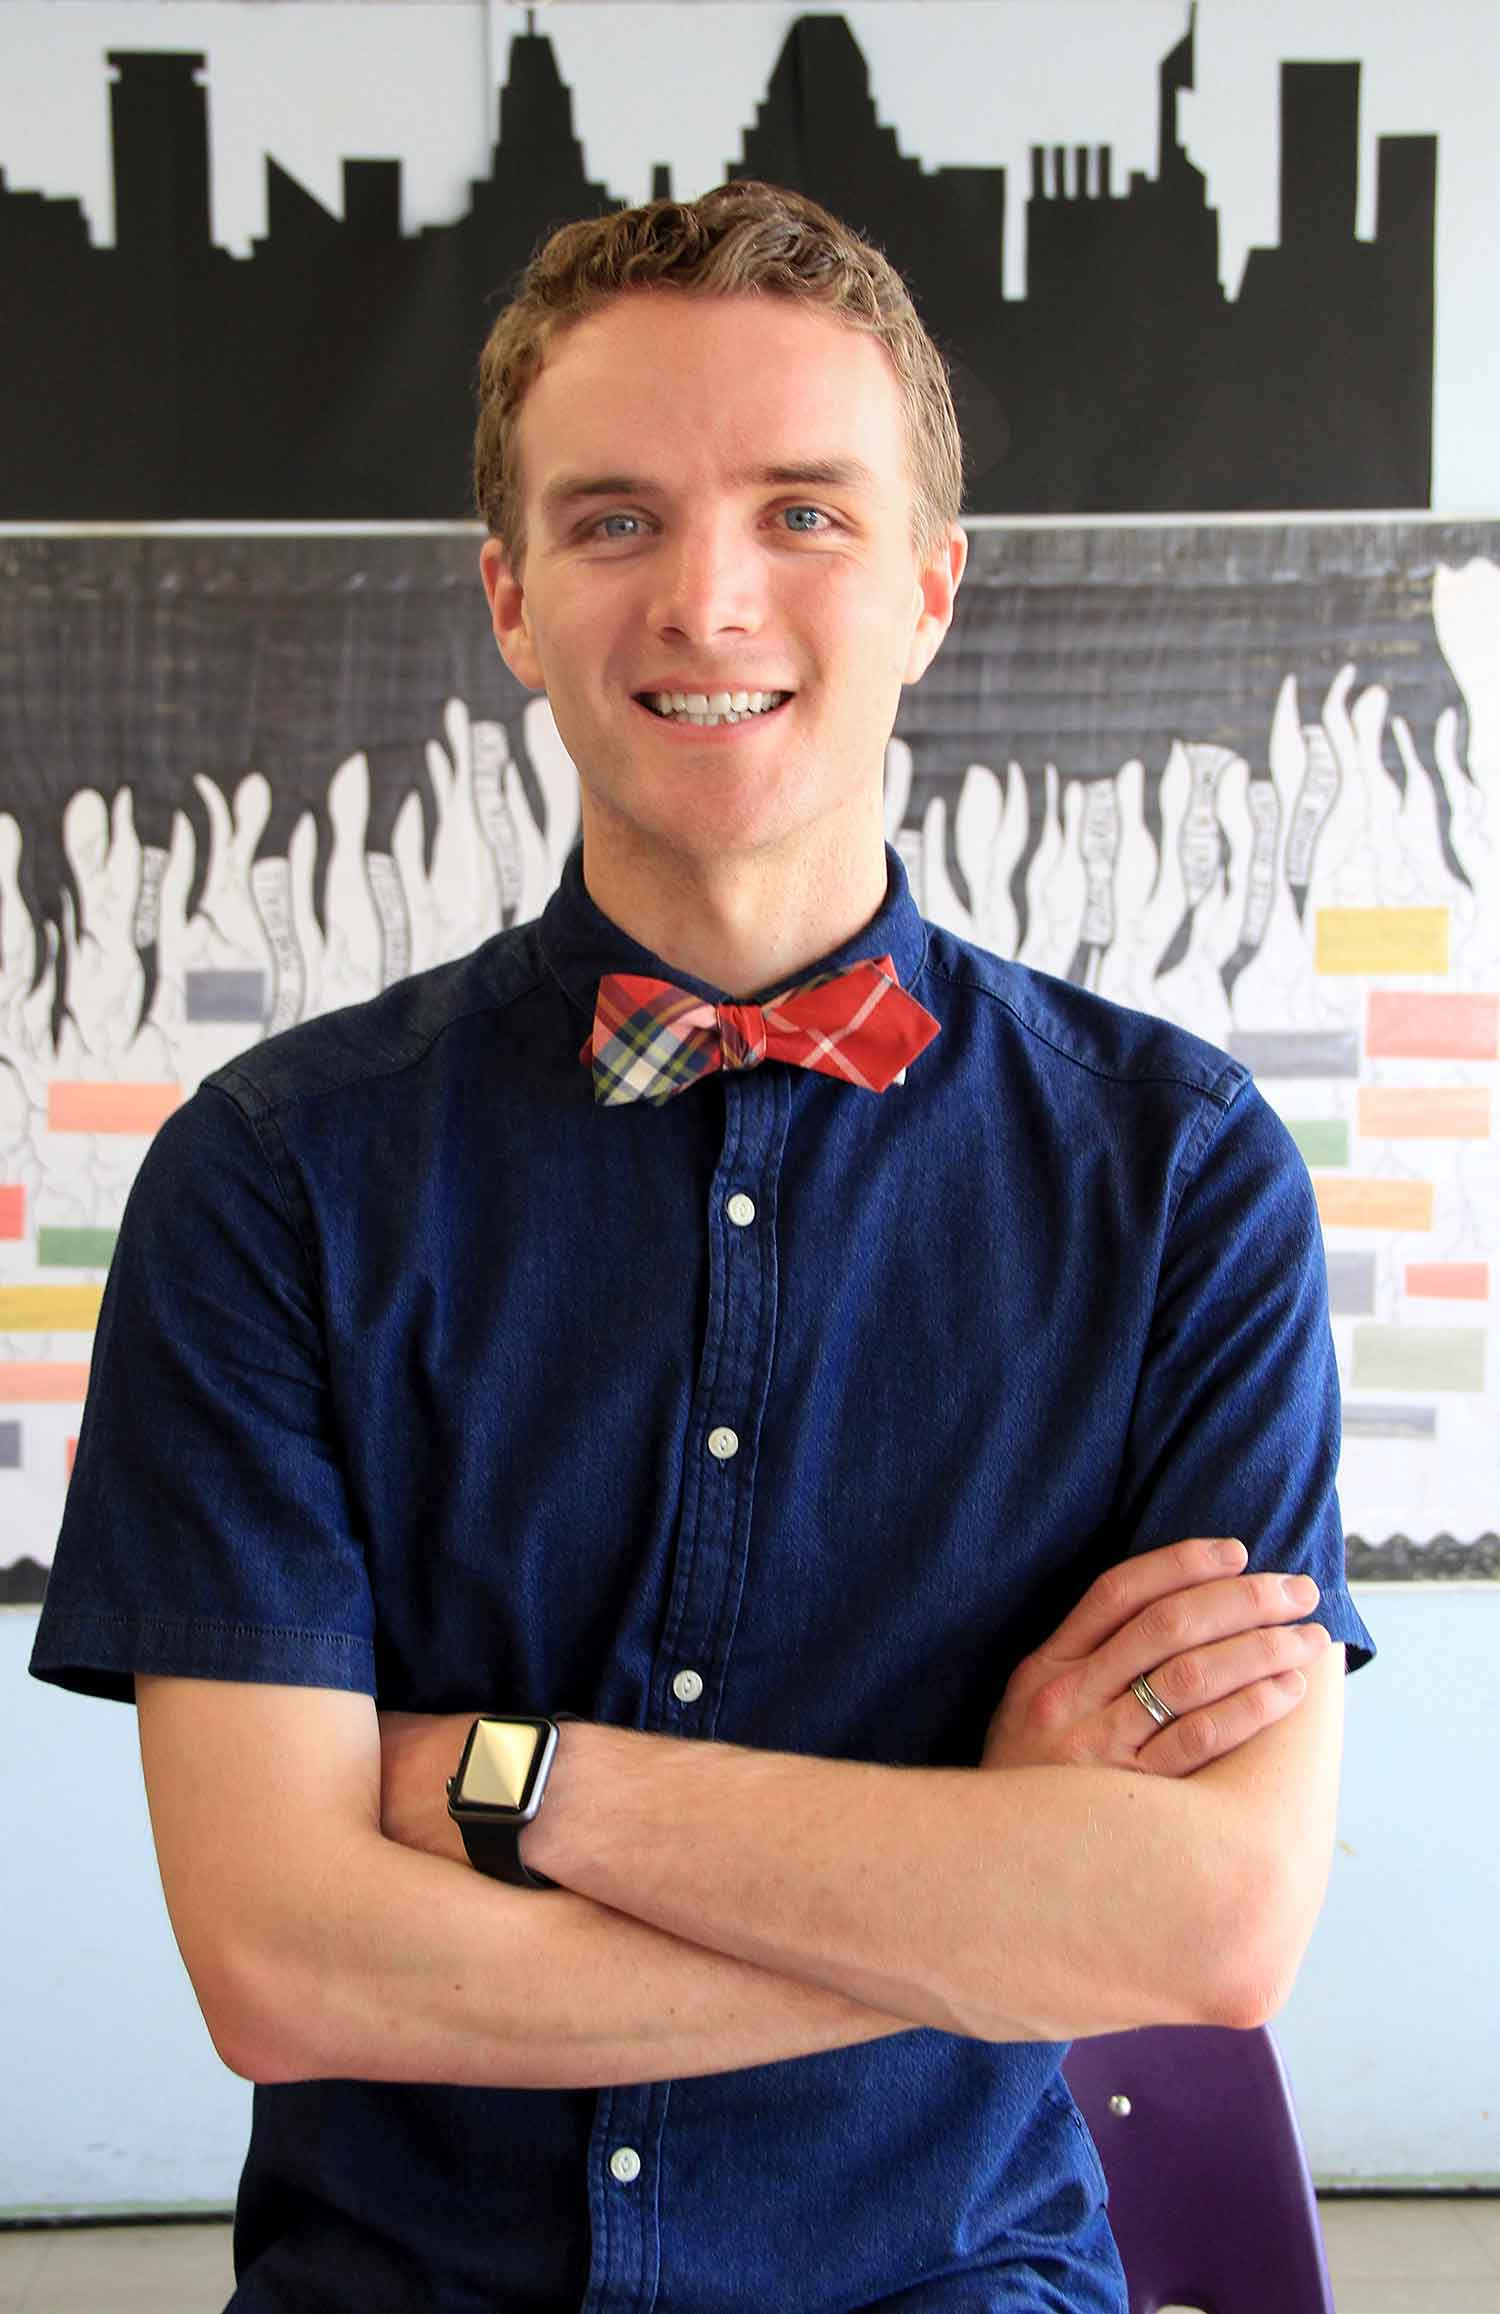 Photo of alumni Wyatt Oroke, a Baltimore middle school teacher